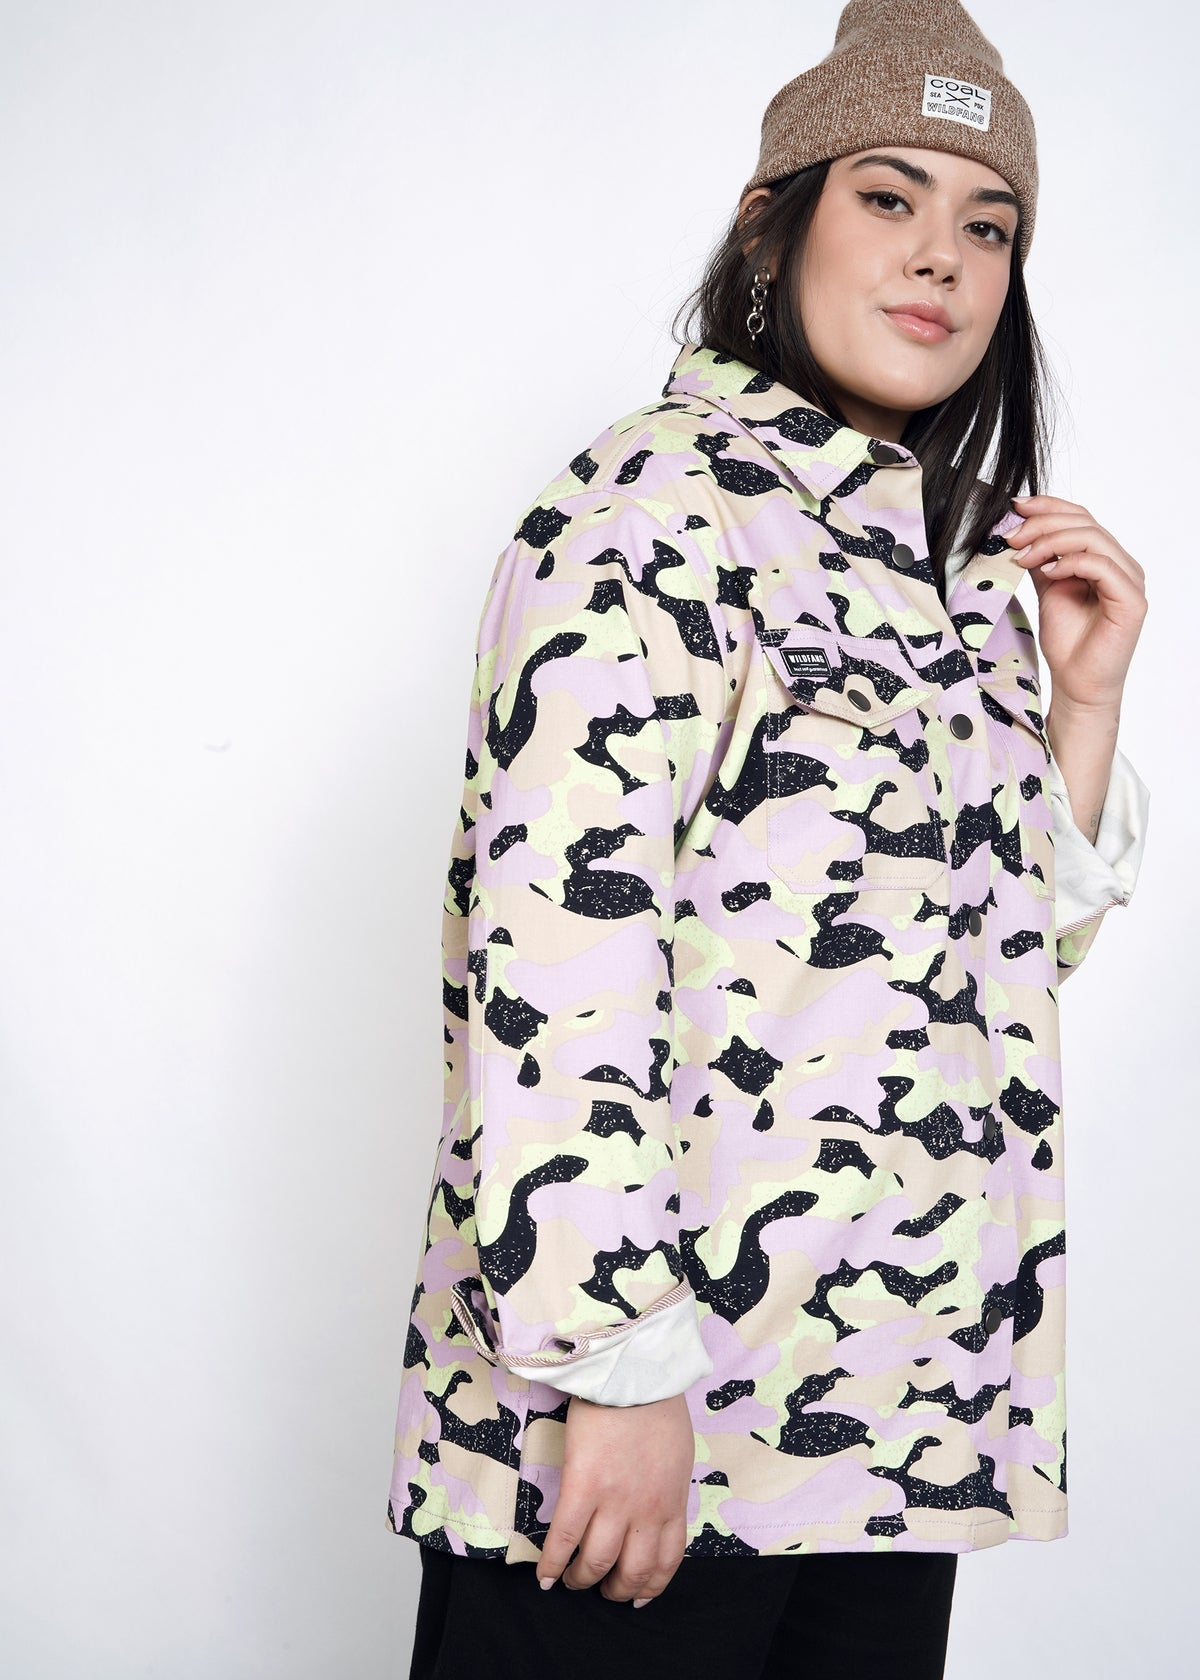 Model wears lavender, celadon, and black camouflage all over print shirt jacket (shacket) in size large with brown beanie